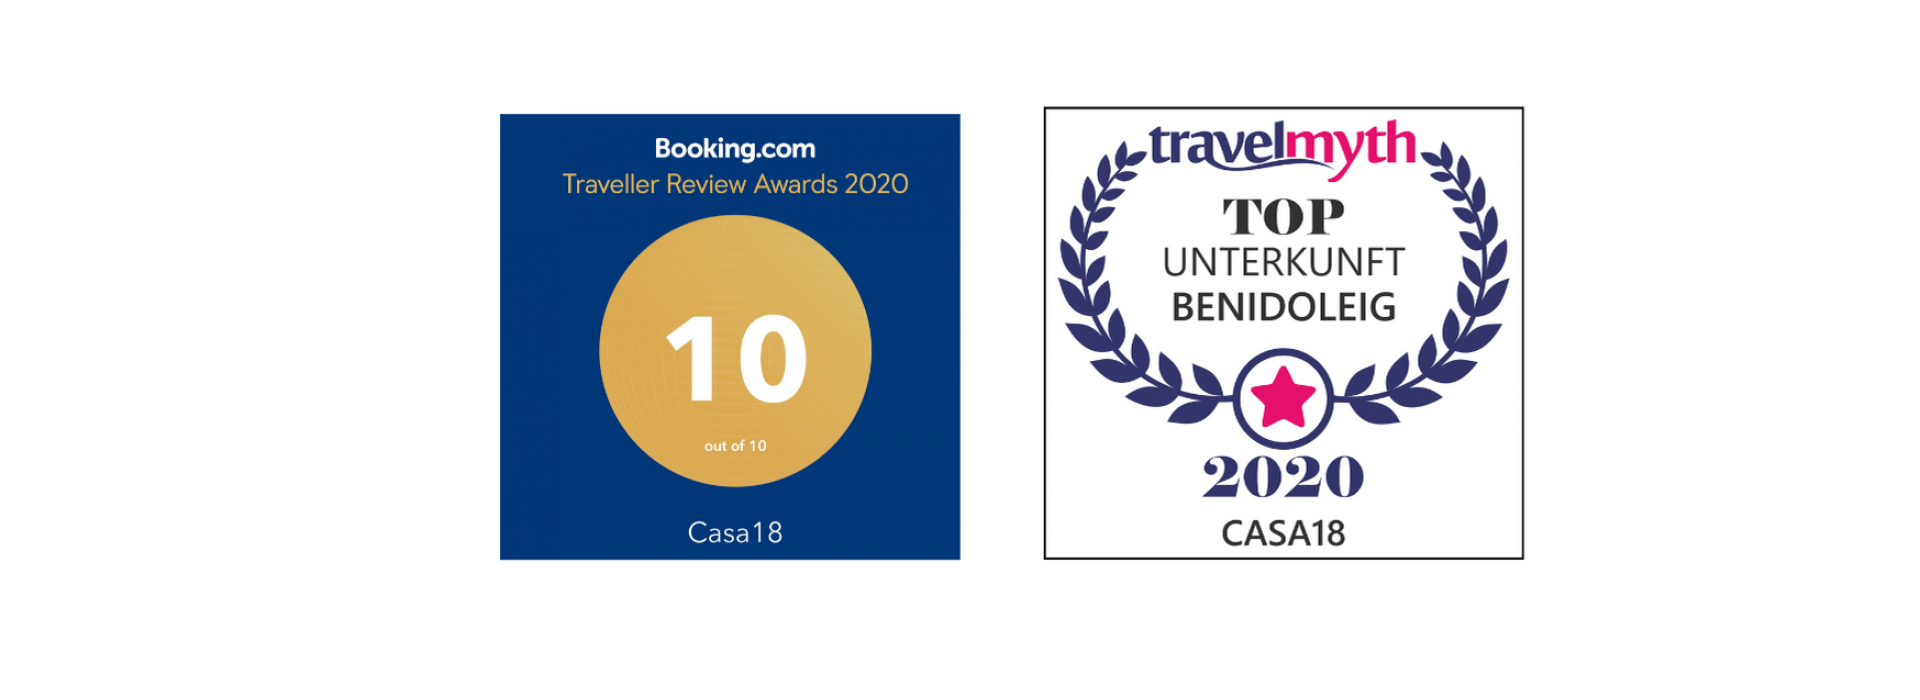 Traveller Review Award 2020 von booking.com